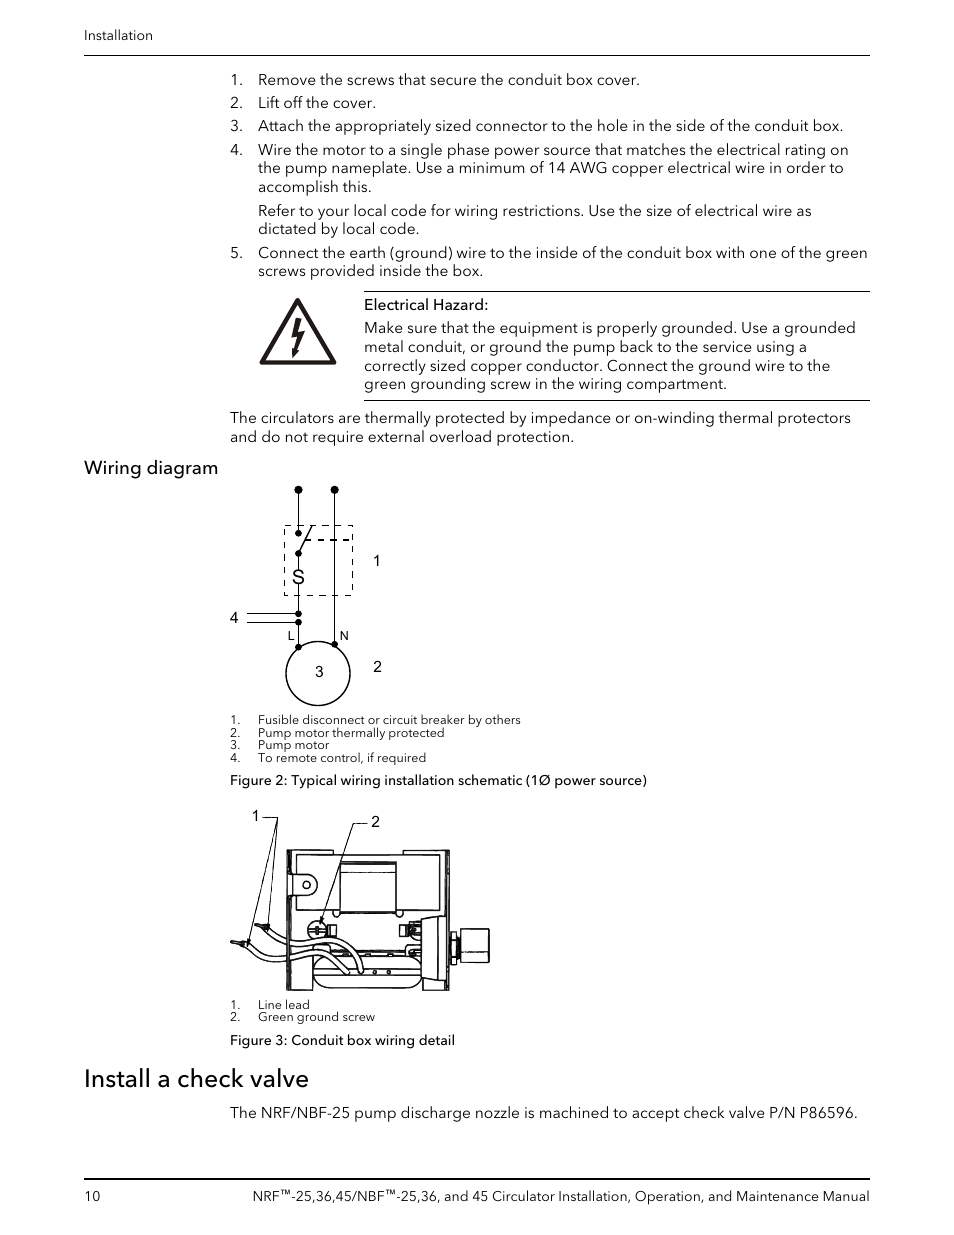 Wiring Diagram Install A Check Valve Bell Gossett P86203f Nbf Figure 3 Circuit Schematic 45 Circulator User Manual Page 12 20